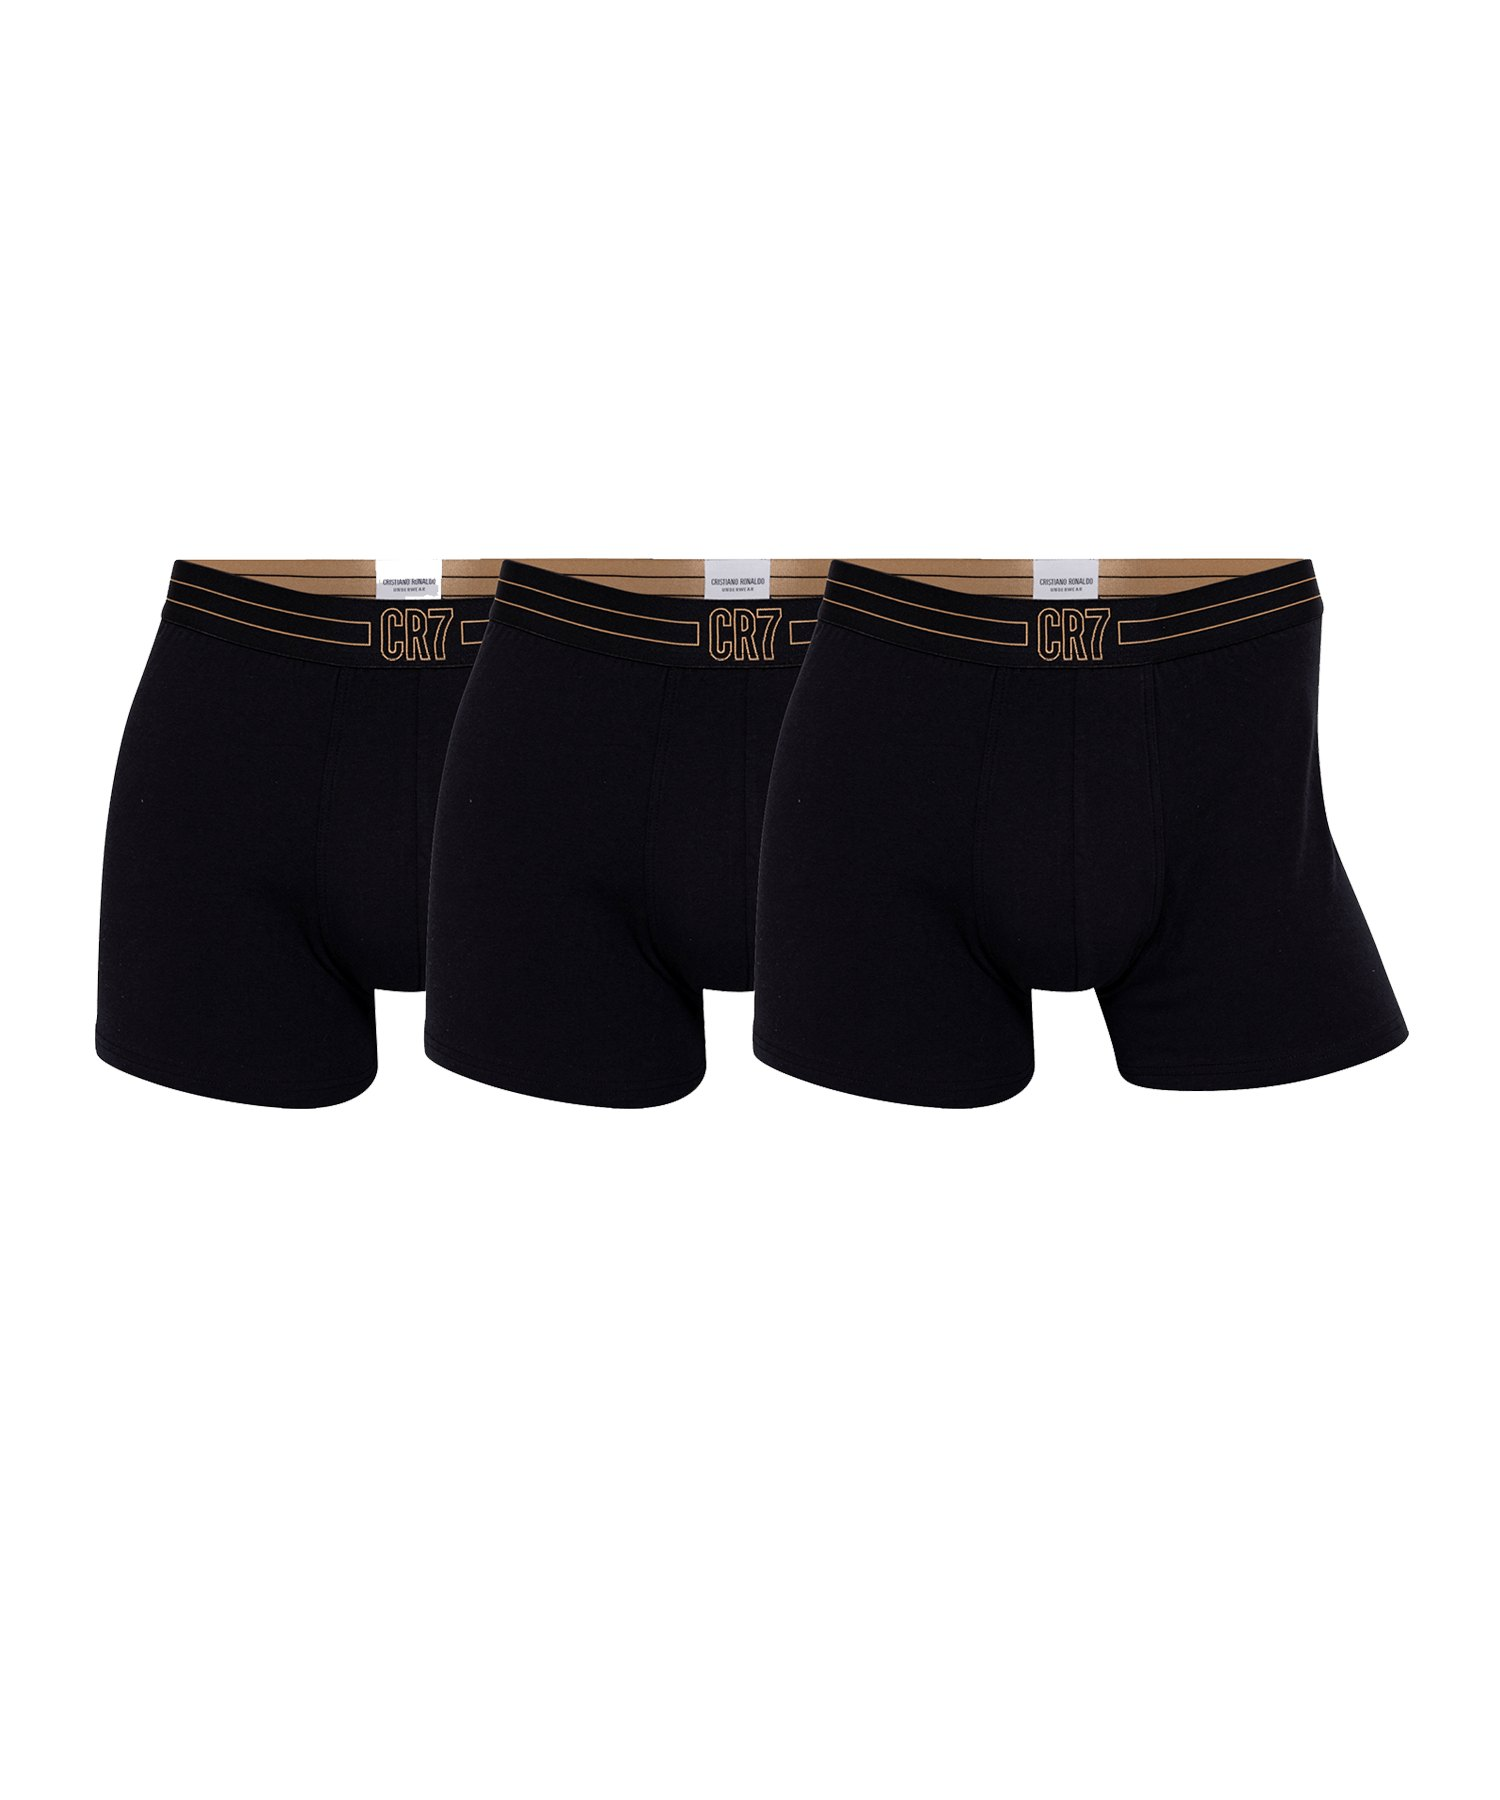 CR7 Basic Underwear Brief 3er Pack Schwarz - schwarz